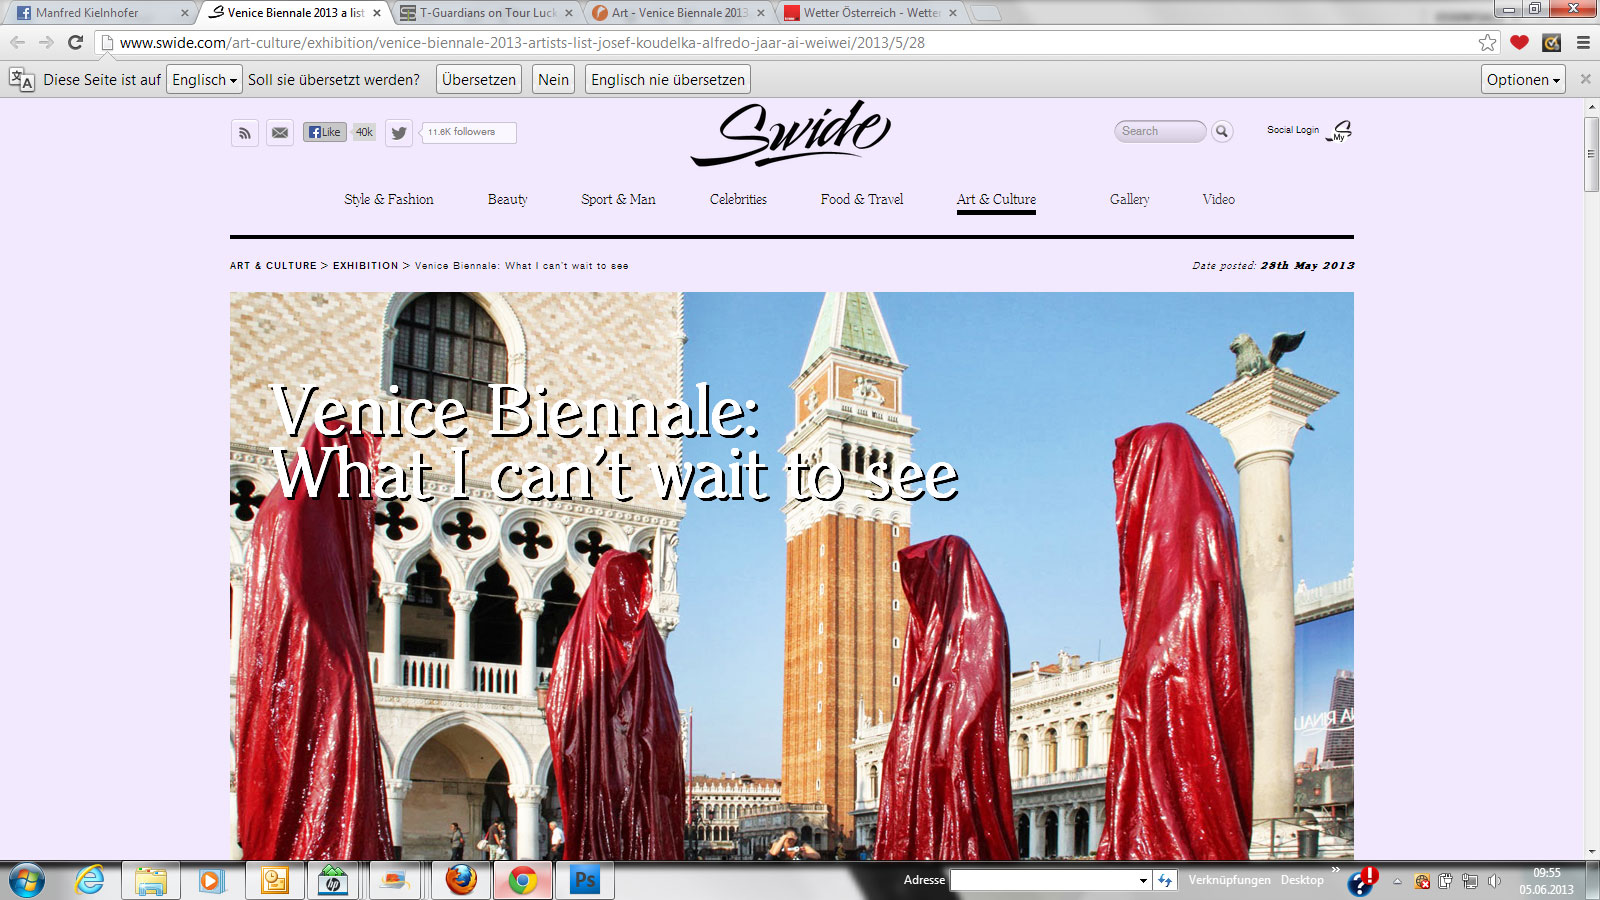 public-show-art-biennial-venice-italy-manfred-kielnhofer-guardians-of-time-sculpture-festival-art-arts-swide